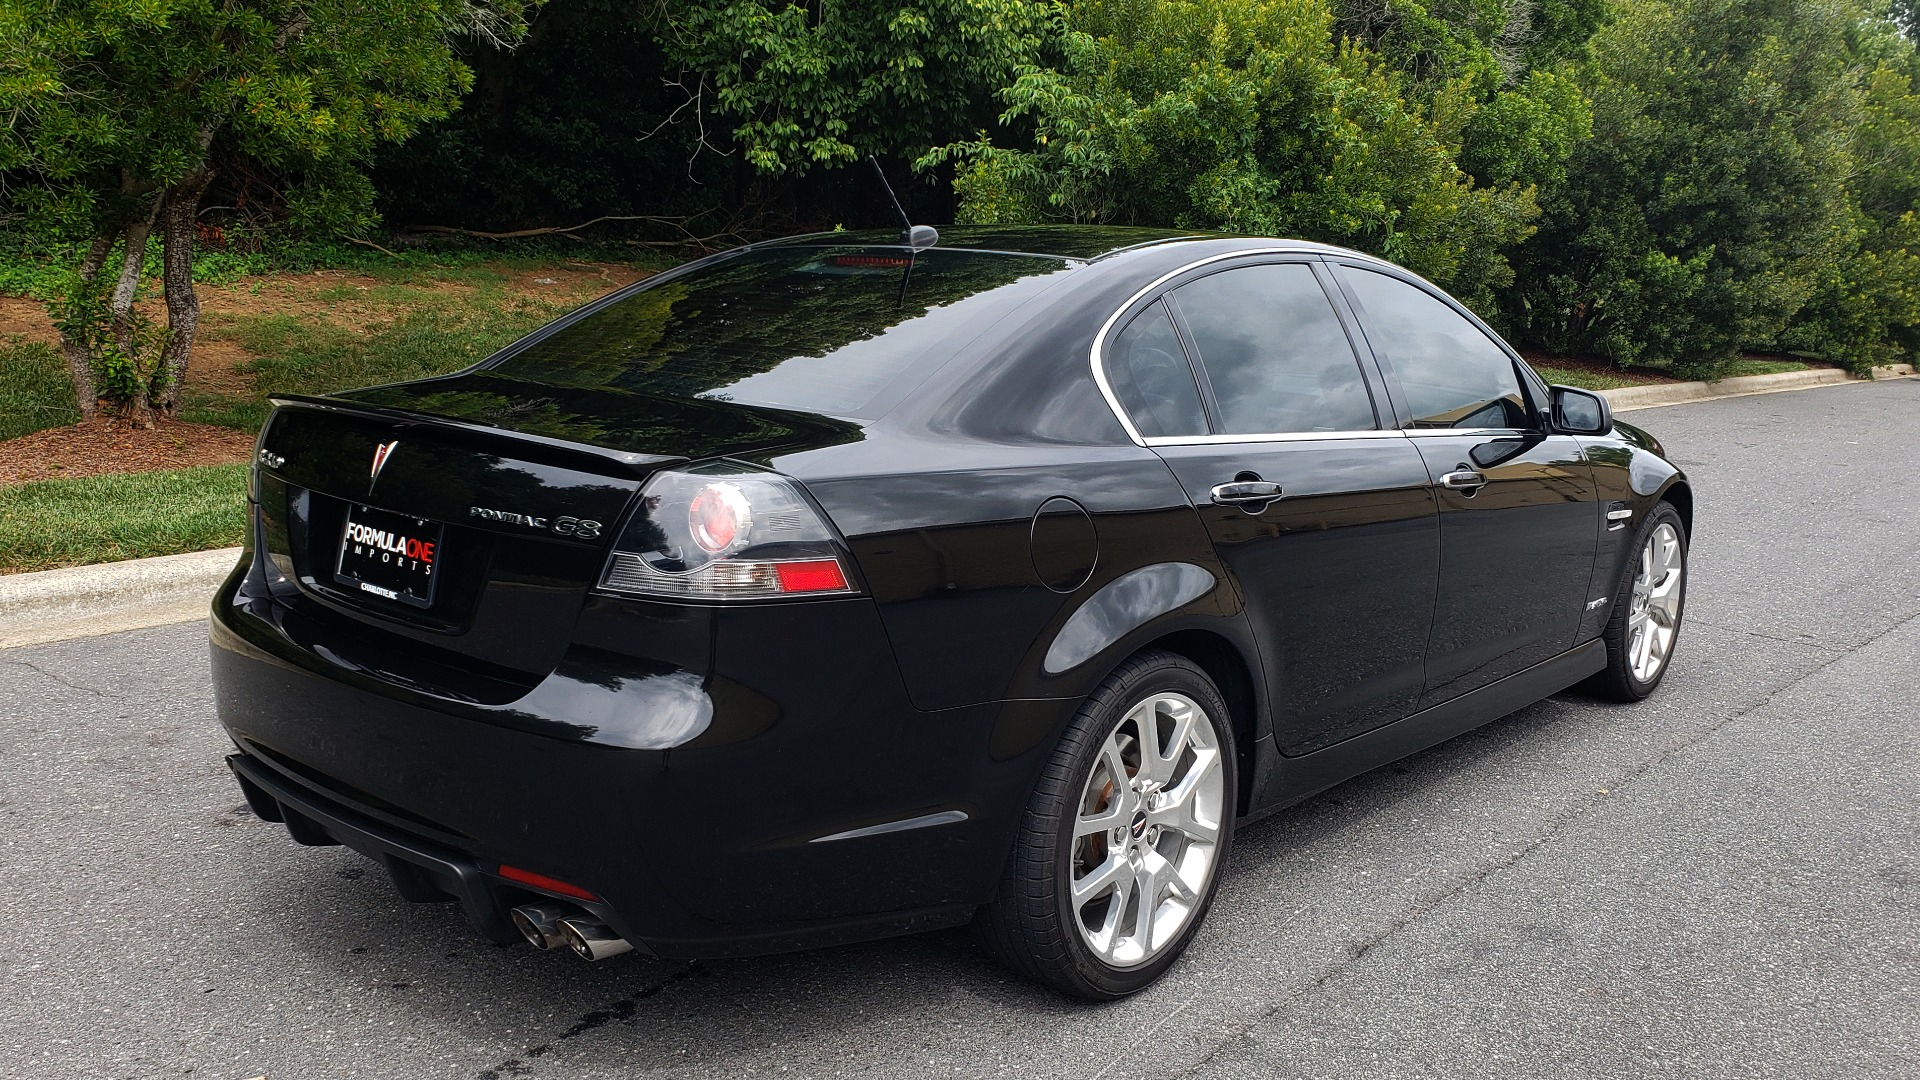 Used 2009 Pontiac G8 GXP / 6.2L LS3 V8 / 6-SPD AUTO / SUNROOF / 19IN WHEELS for sale Sold at Formula Imports in Charlotte NC 28227 10